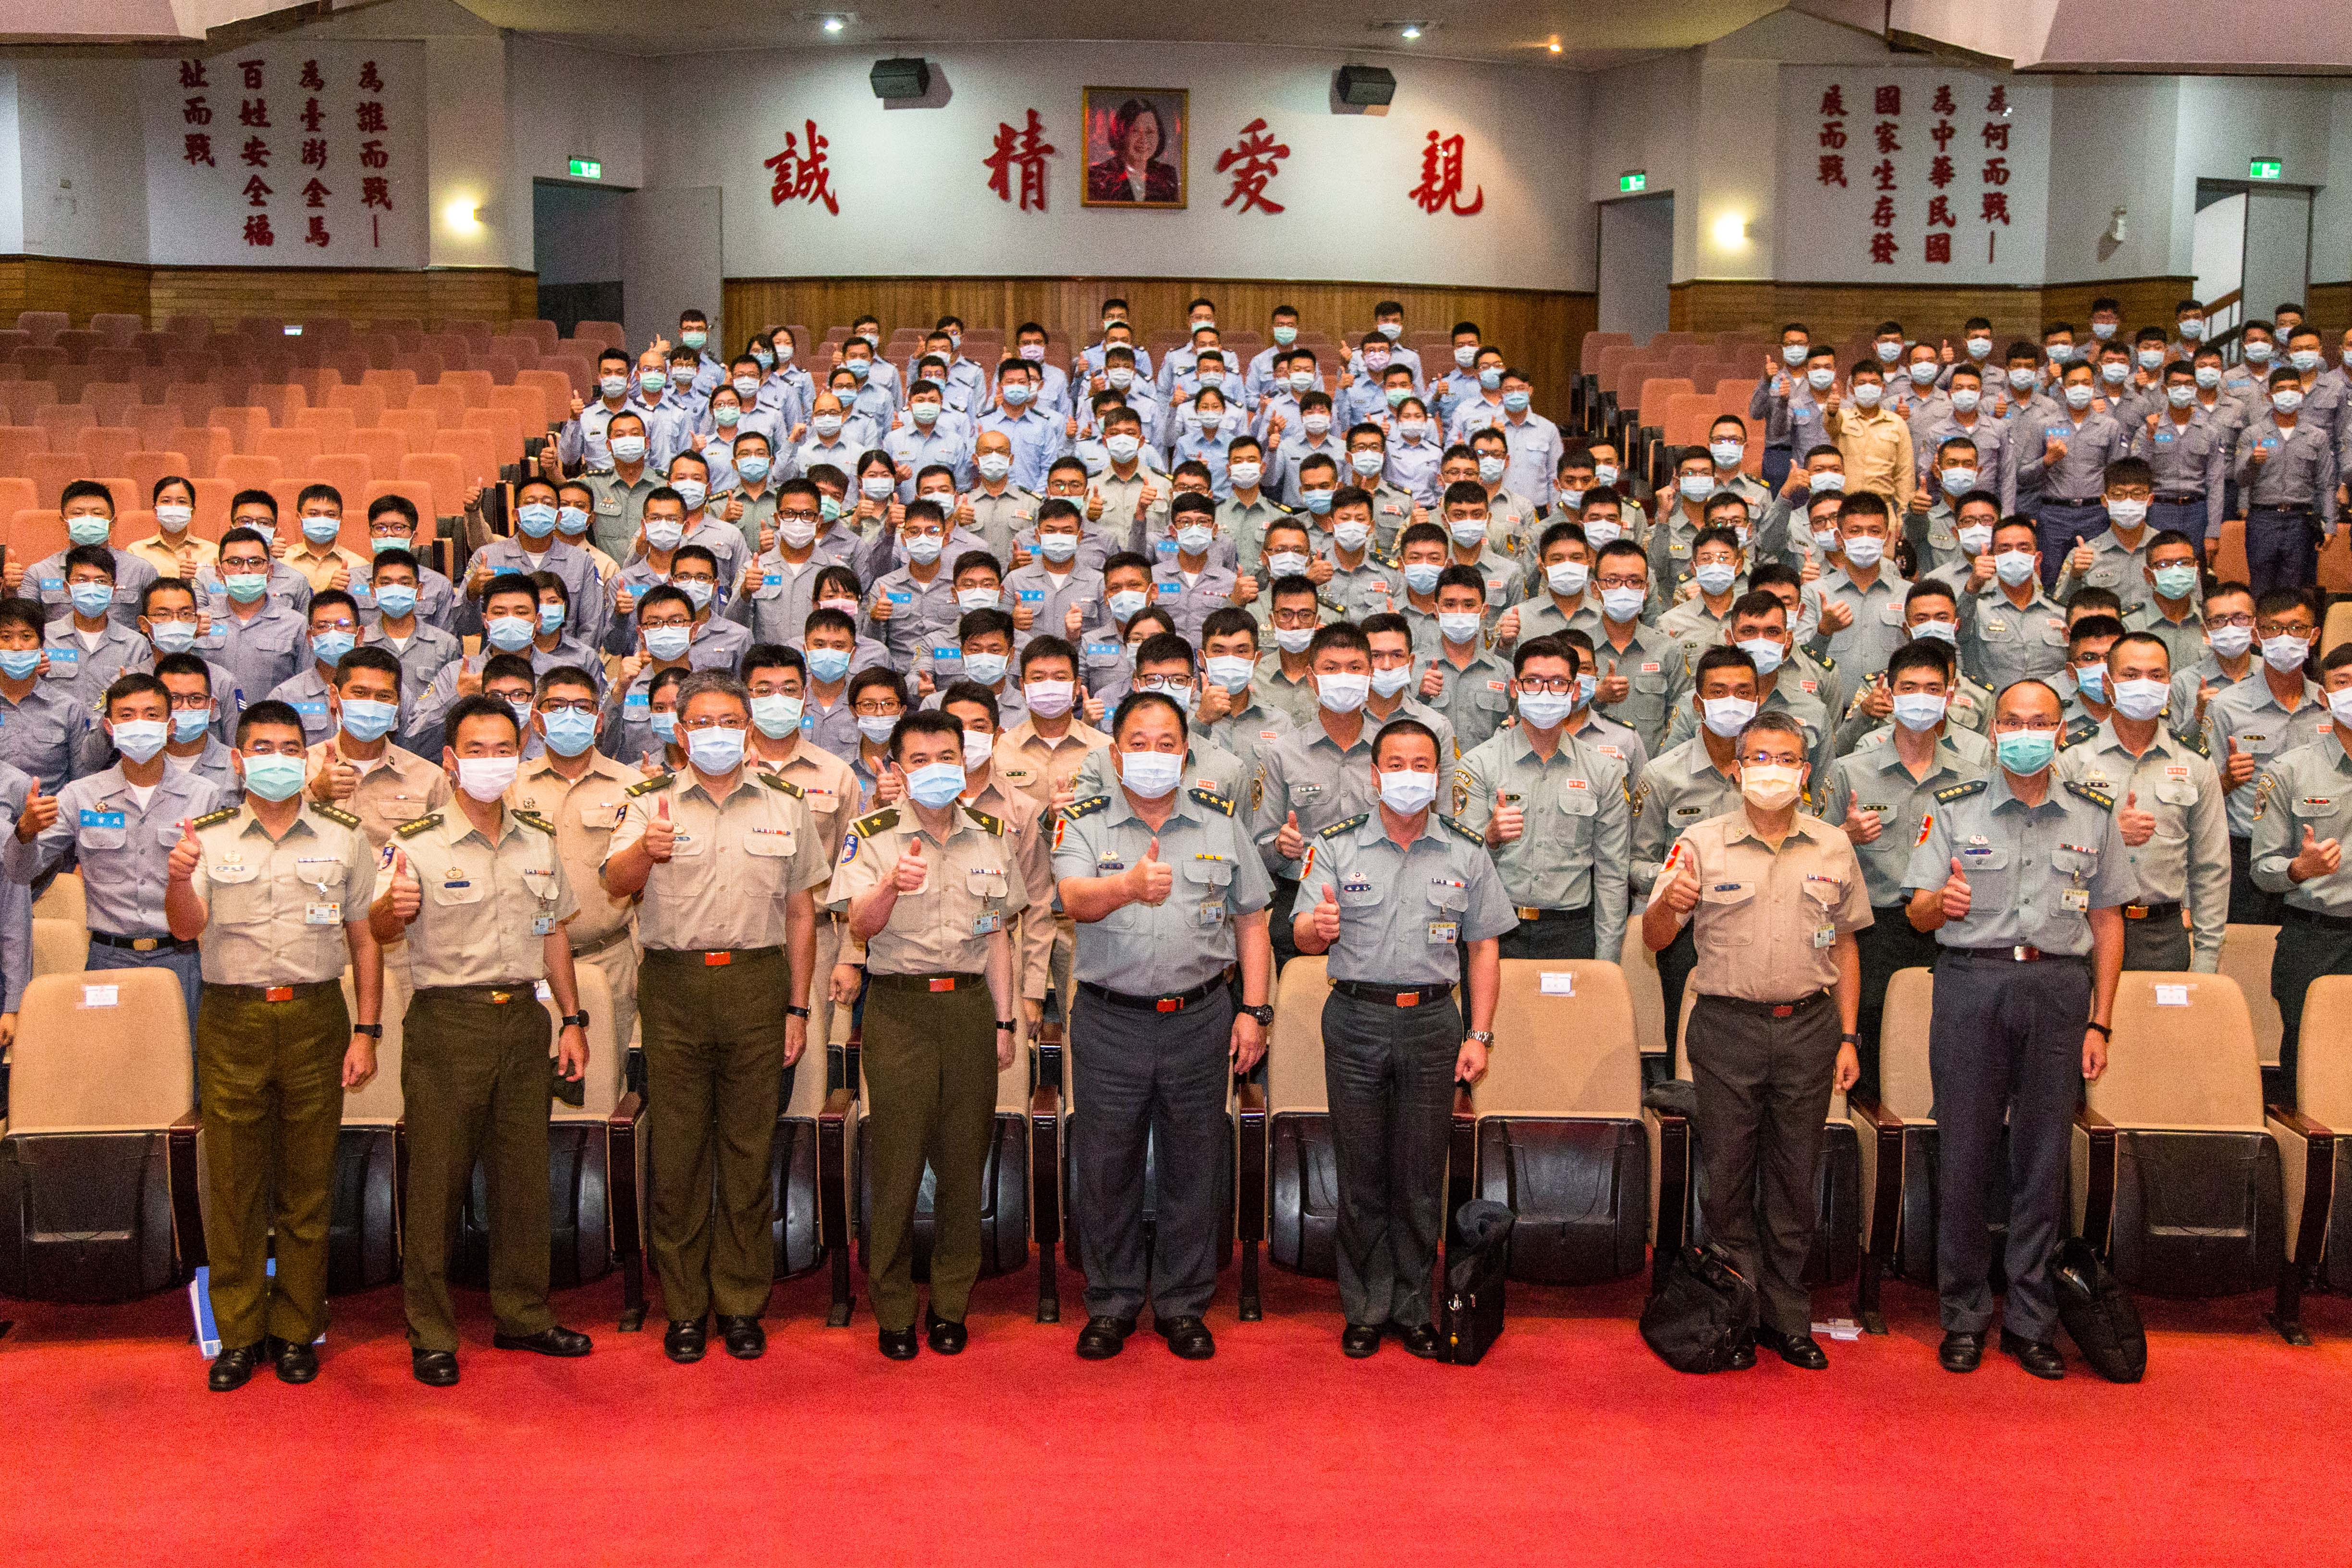 VCGS-XO inspects and encourages troops of Double-Ten performances